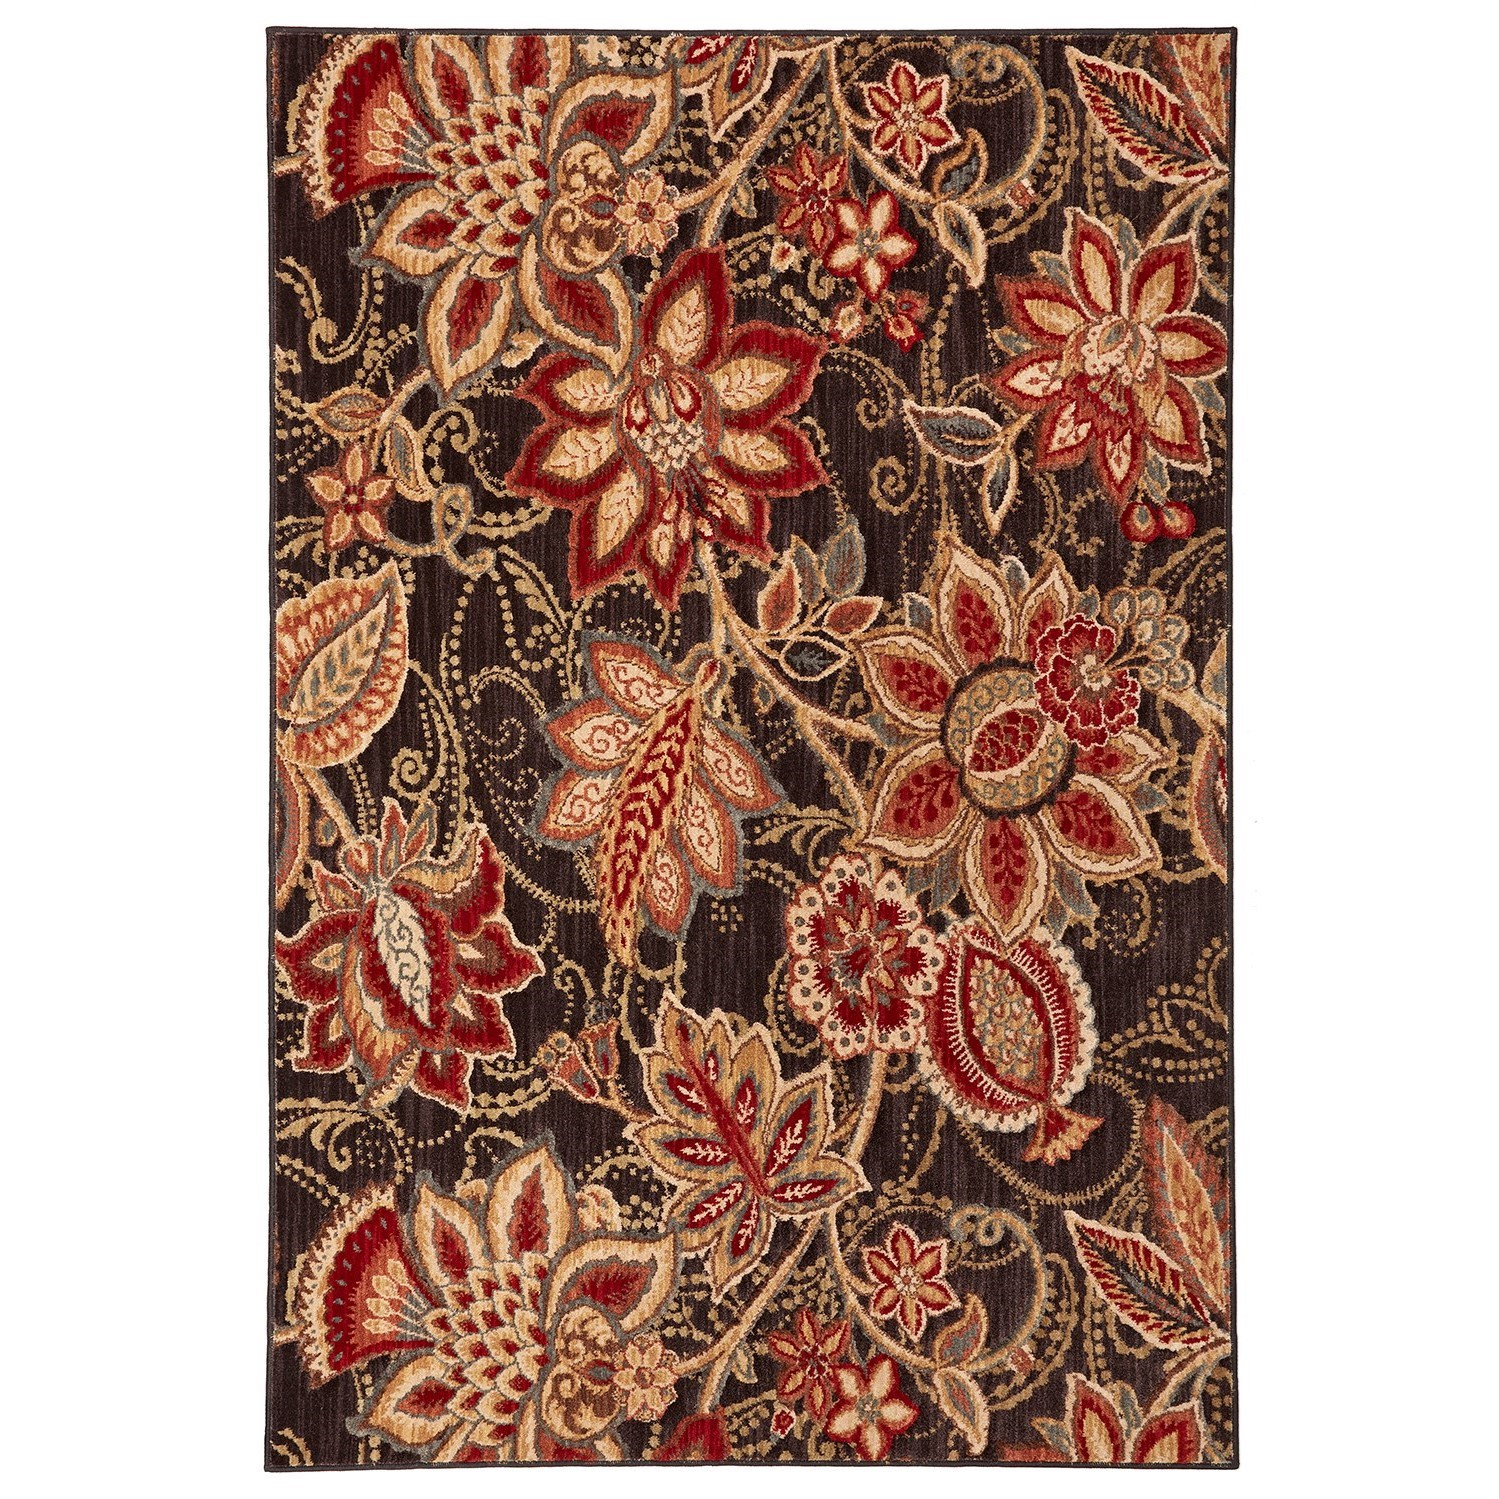 """Dryden 5' 3""""x7' 10"""" Concord Black Area Rug by American Rug Craftsmen at Alison Craig Home Furnishings"""